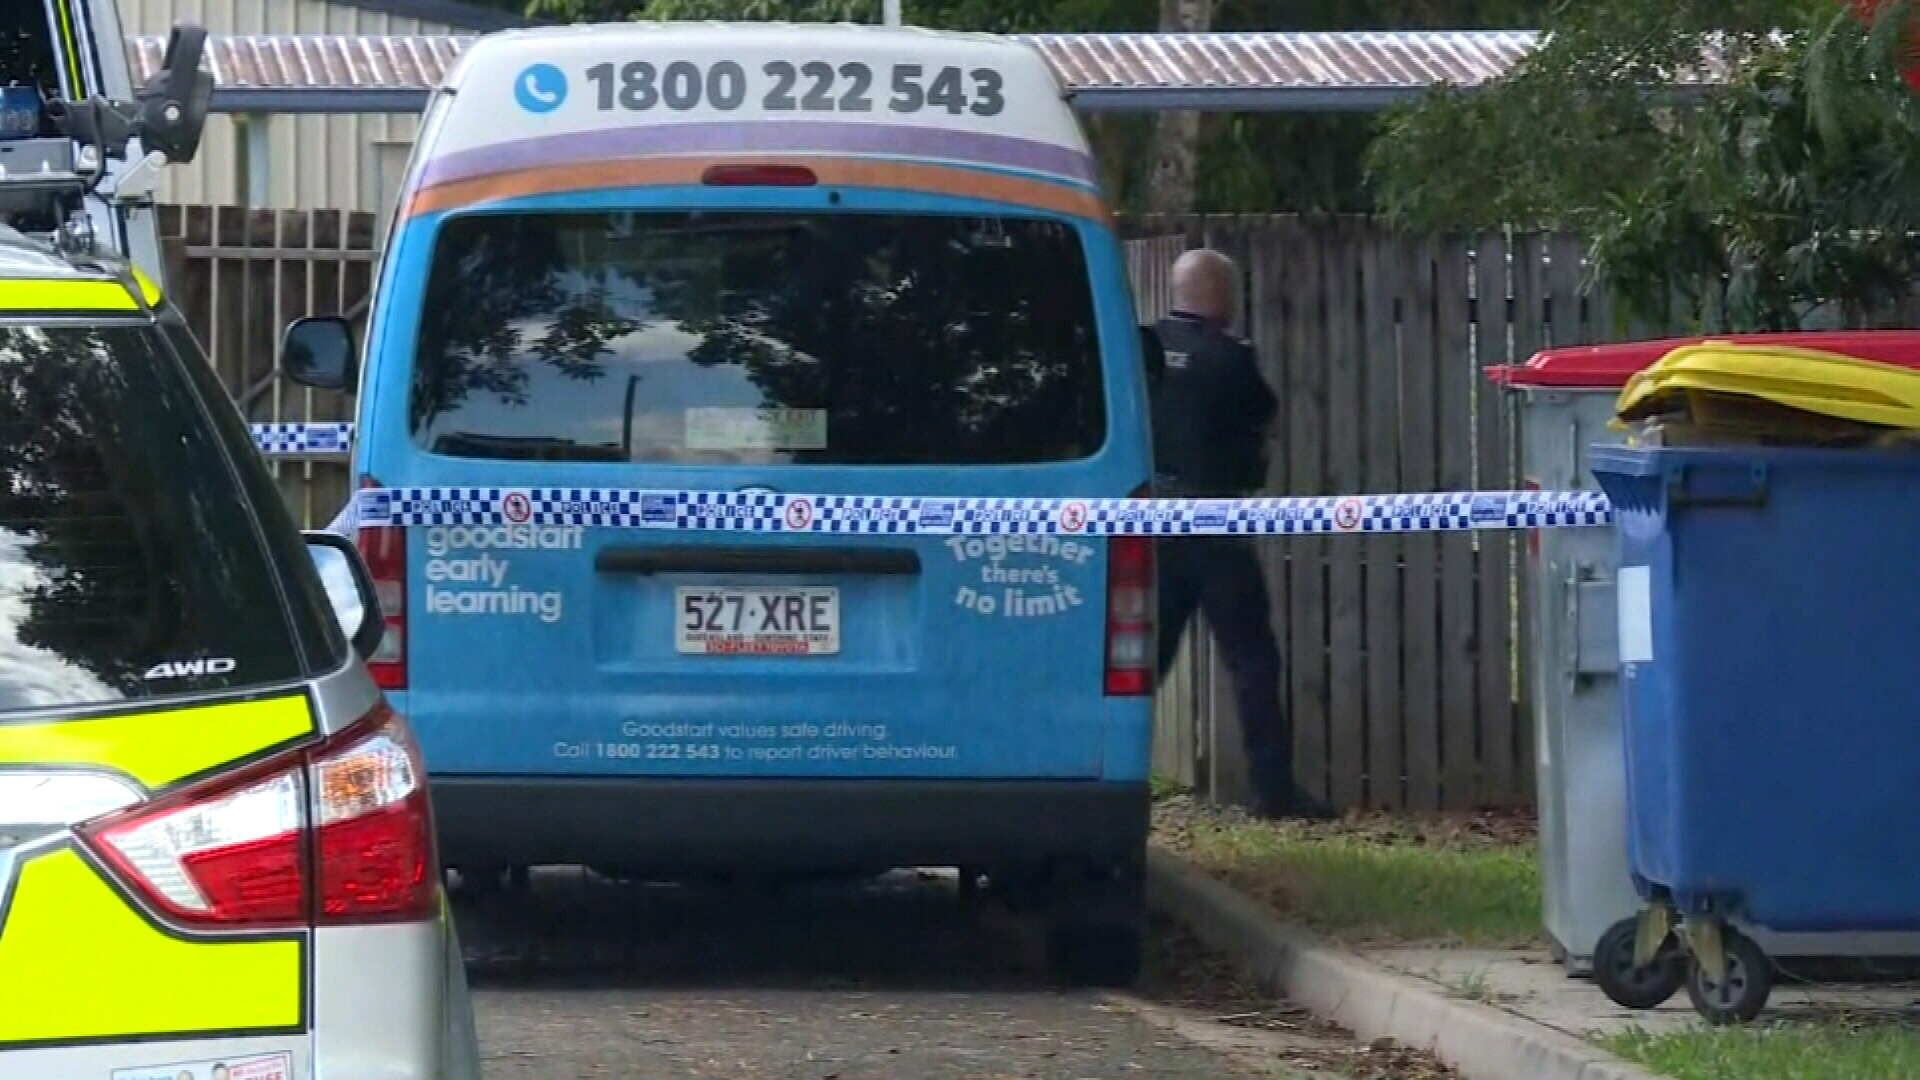 The Cairns boy was found dead in a Goodstart Early Learning bus parked outside a school in Edmonton yesterday, when temperatures soared to 35 degrees.